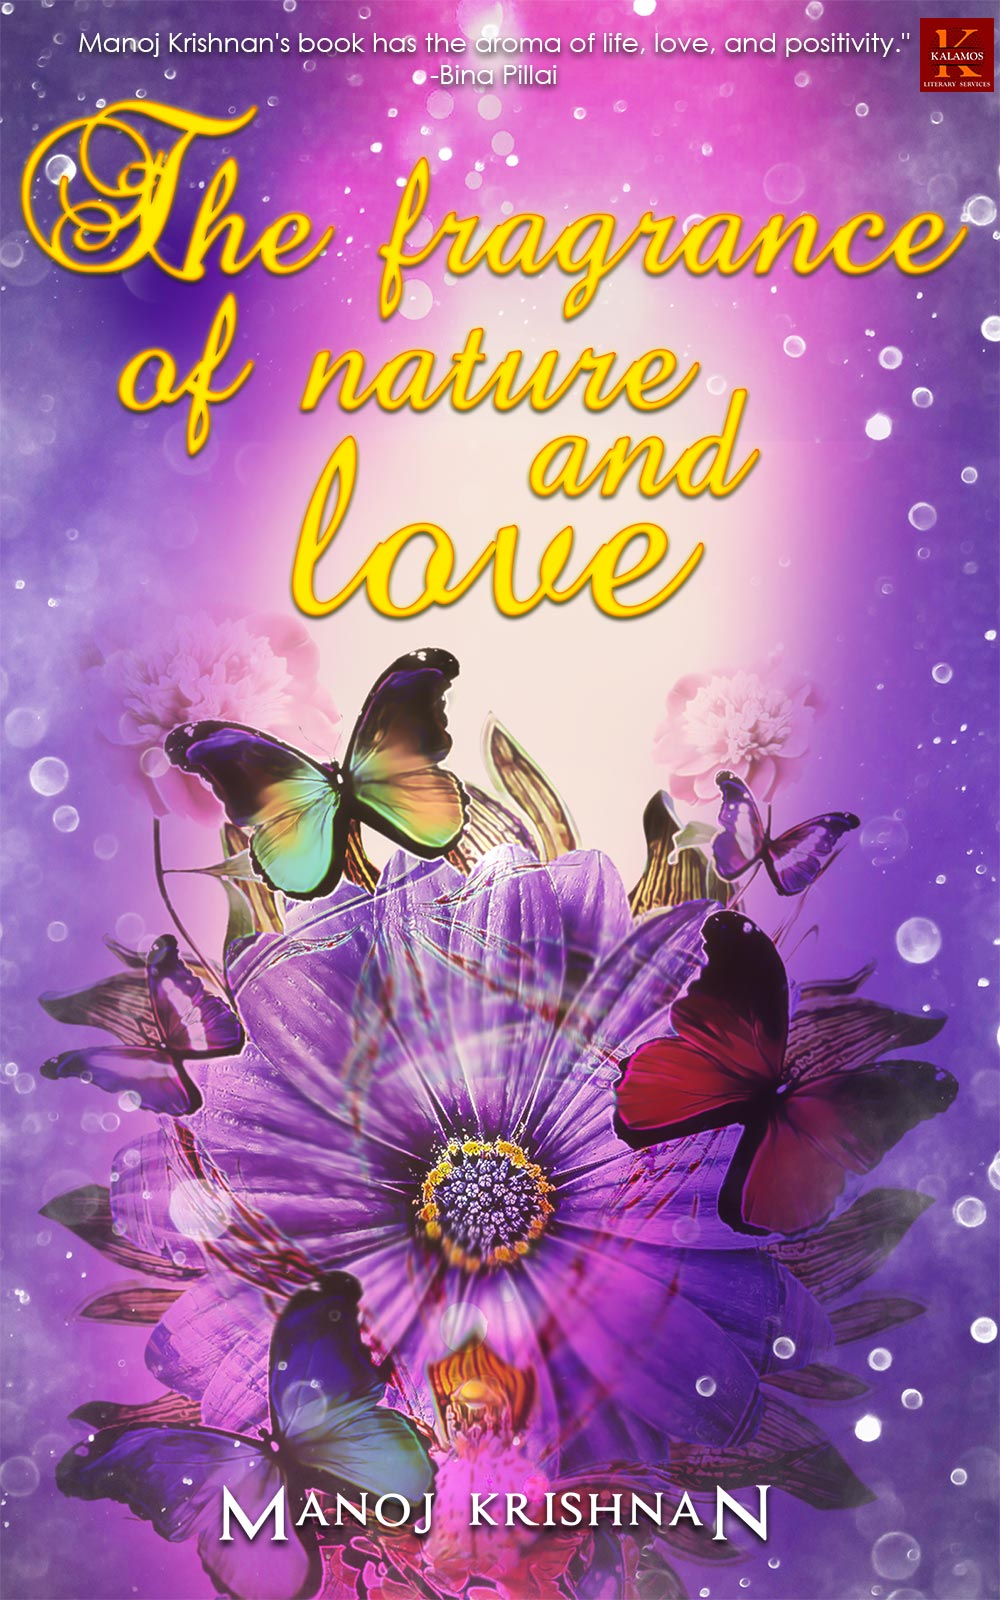 The Fragrance of Nature and Love By Manoj Krishnan